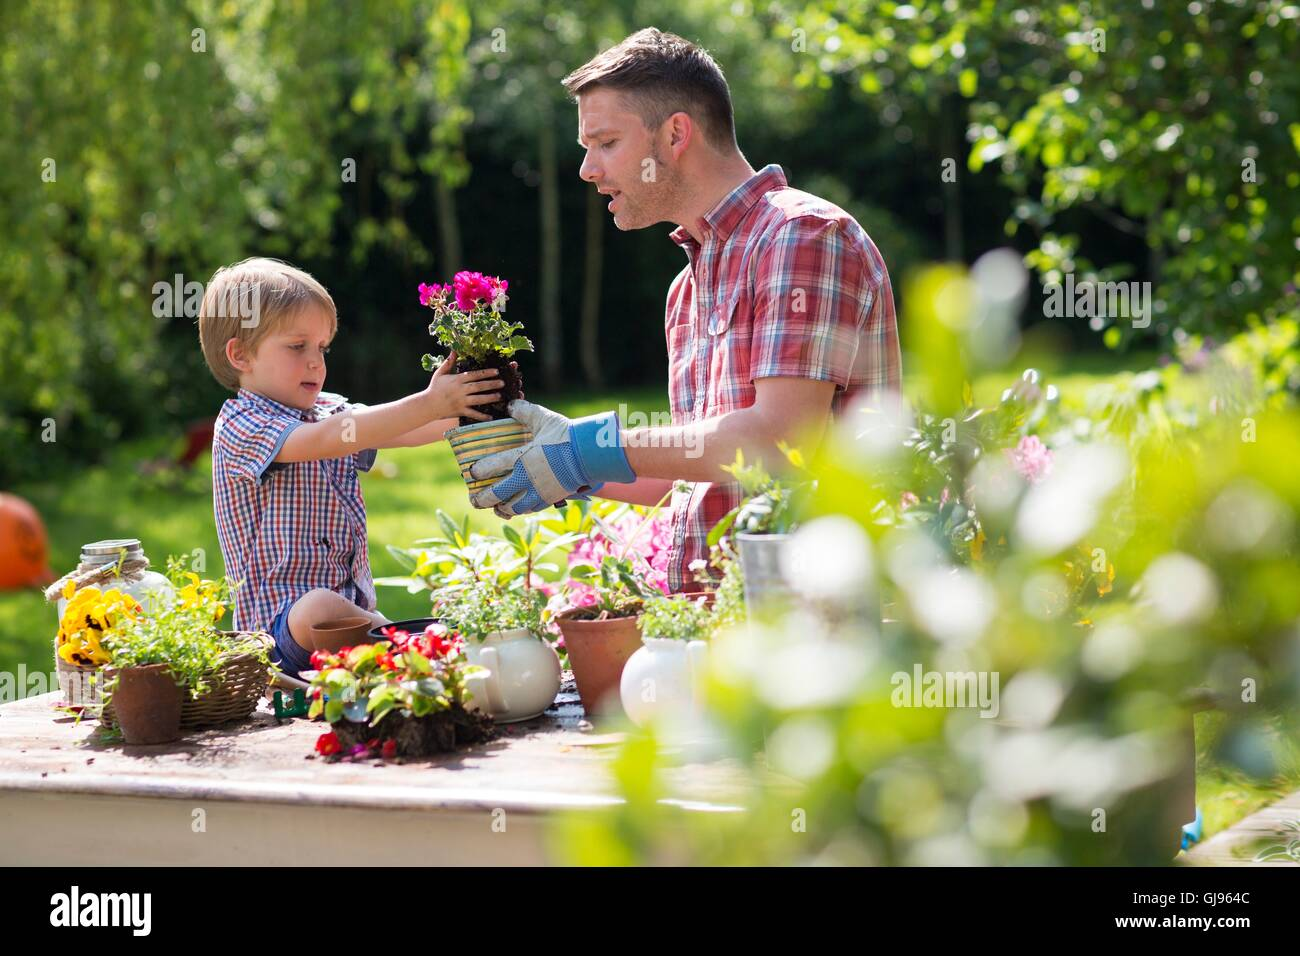 PROPERTY RELEASED. MODEL RELEASED. Father and son putting plant in plant pot. - Stock Image